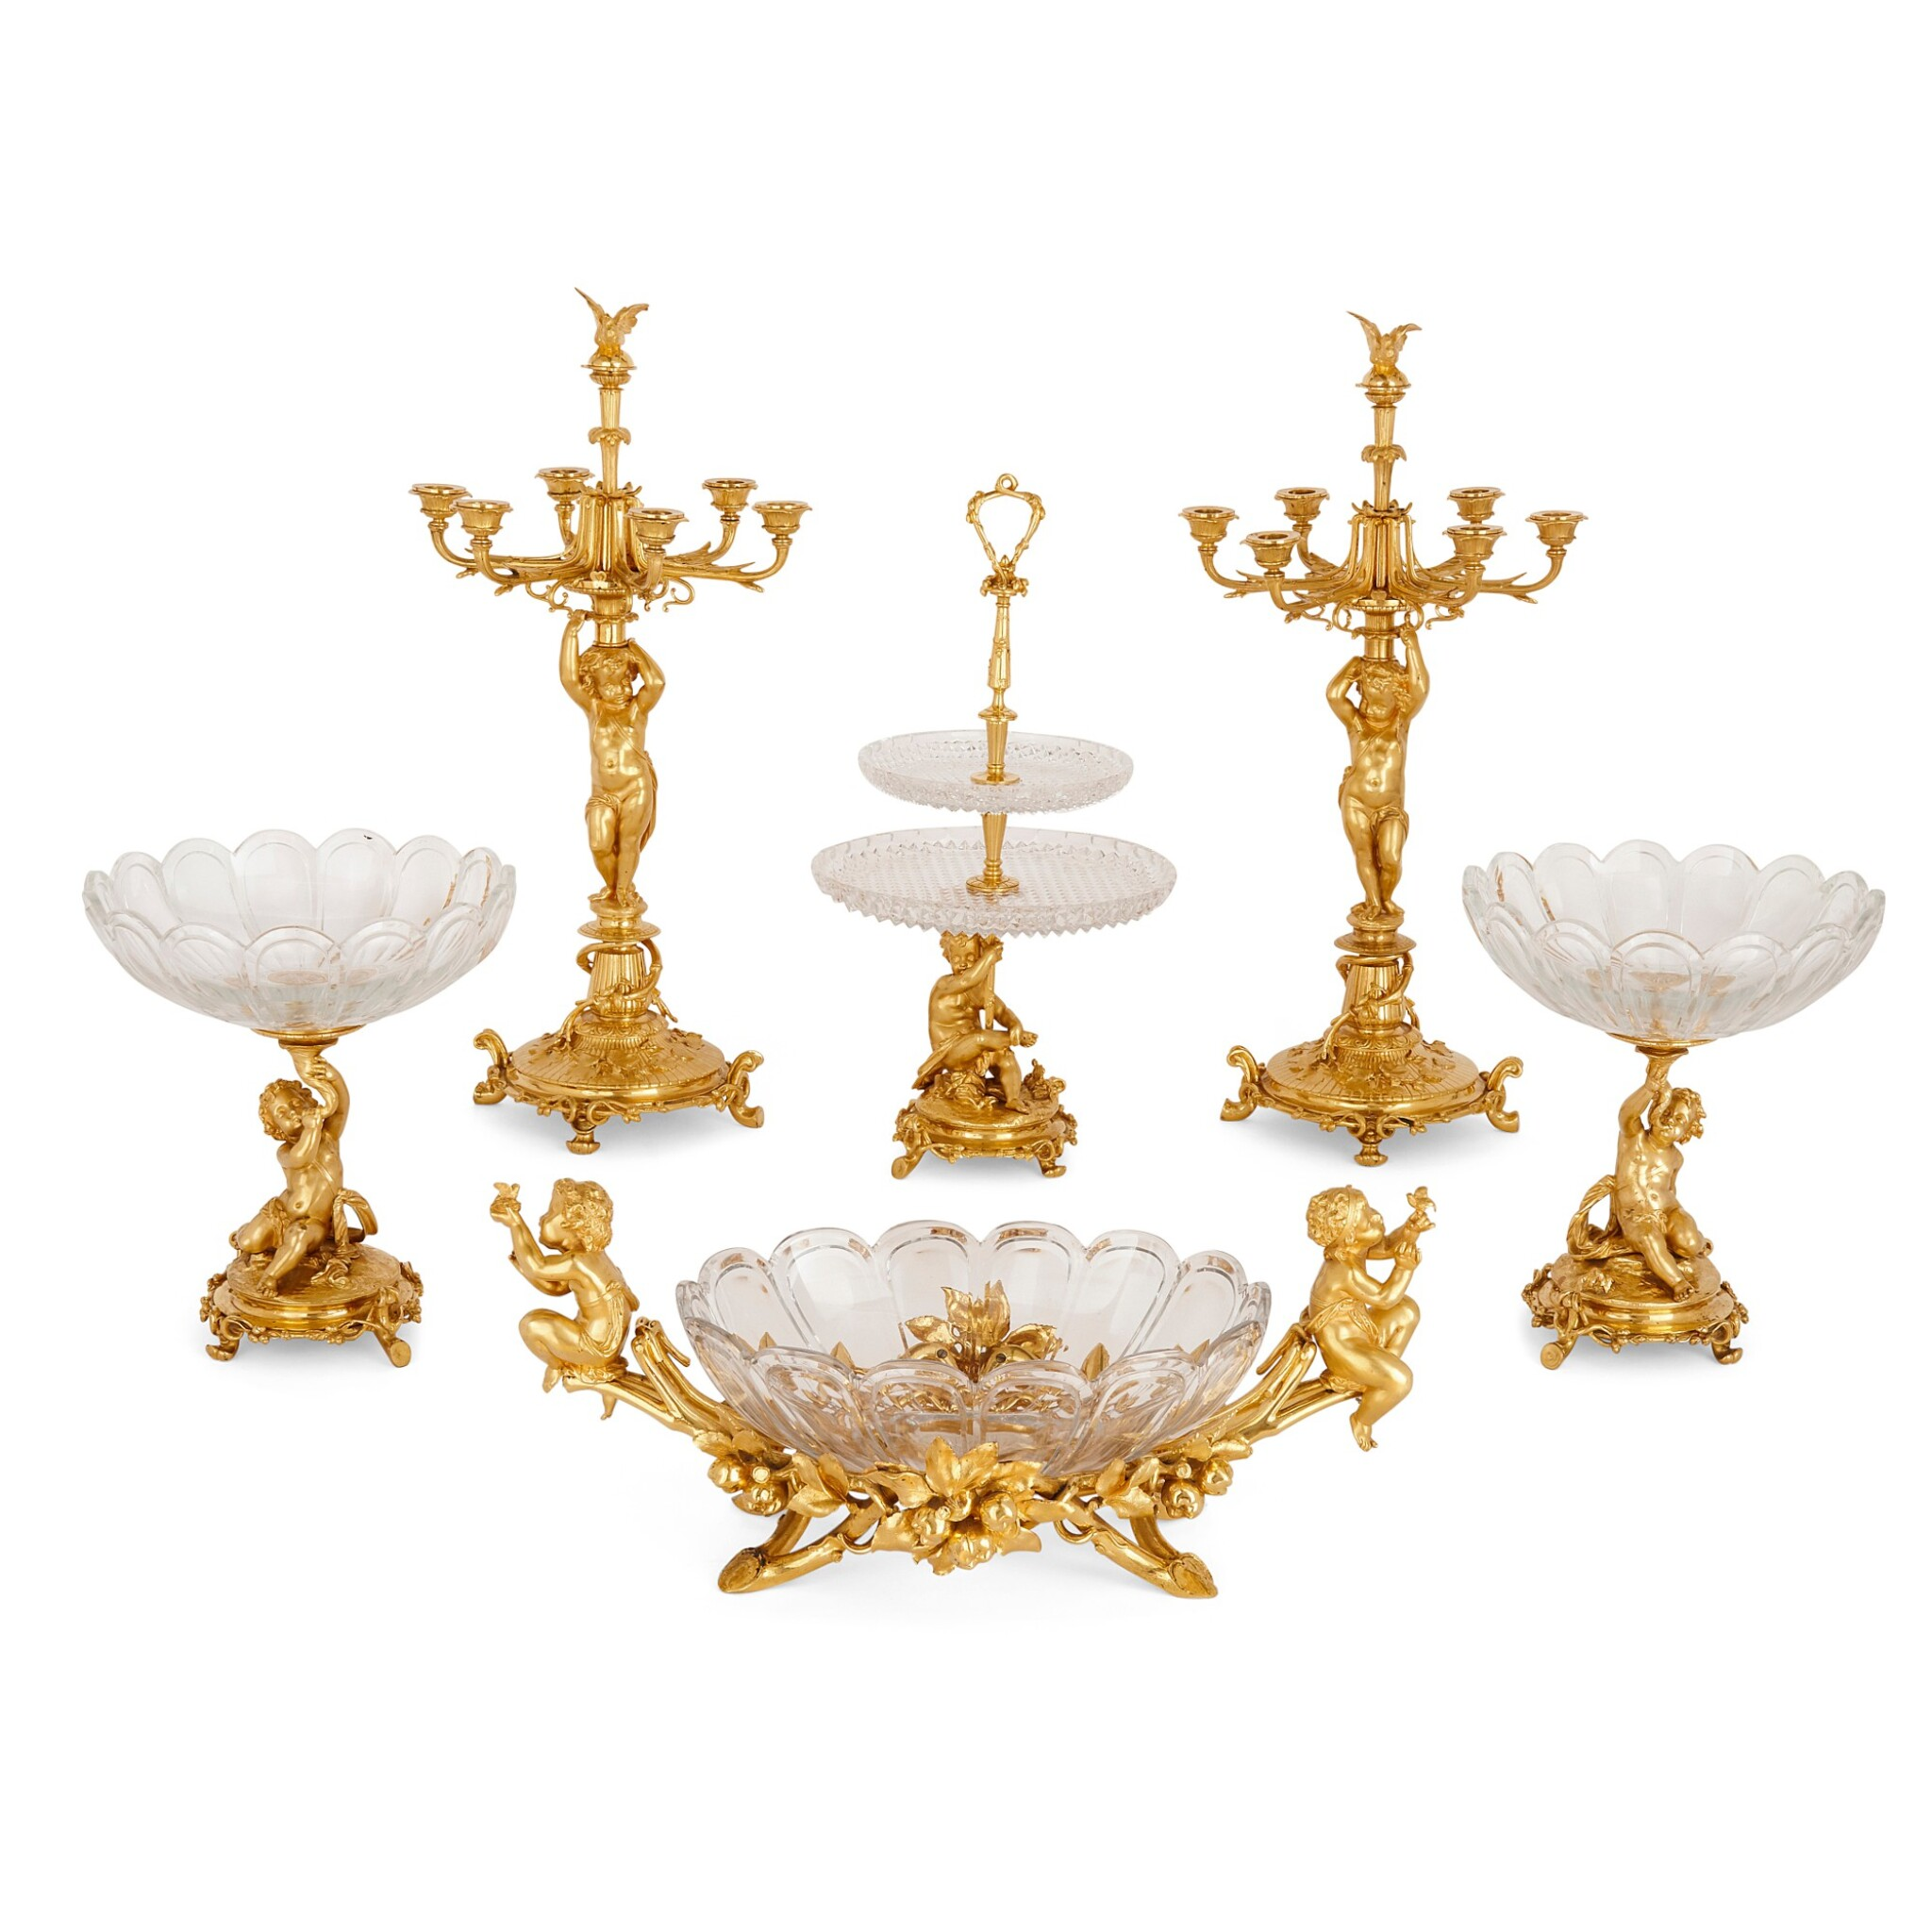 View full screen - View 1 of Lot 75. A FRENCH GILT-BRONZE AND CUT-GLASS SIX-PIECE GARNITURE, BY CHRISTOFLE & CIE CIRCA 1880.